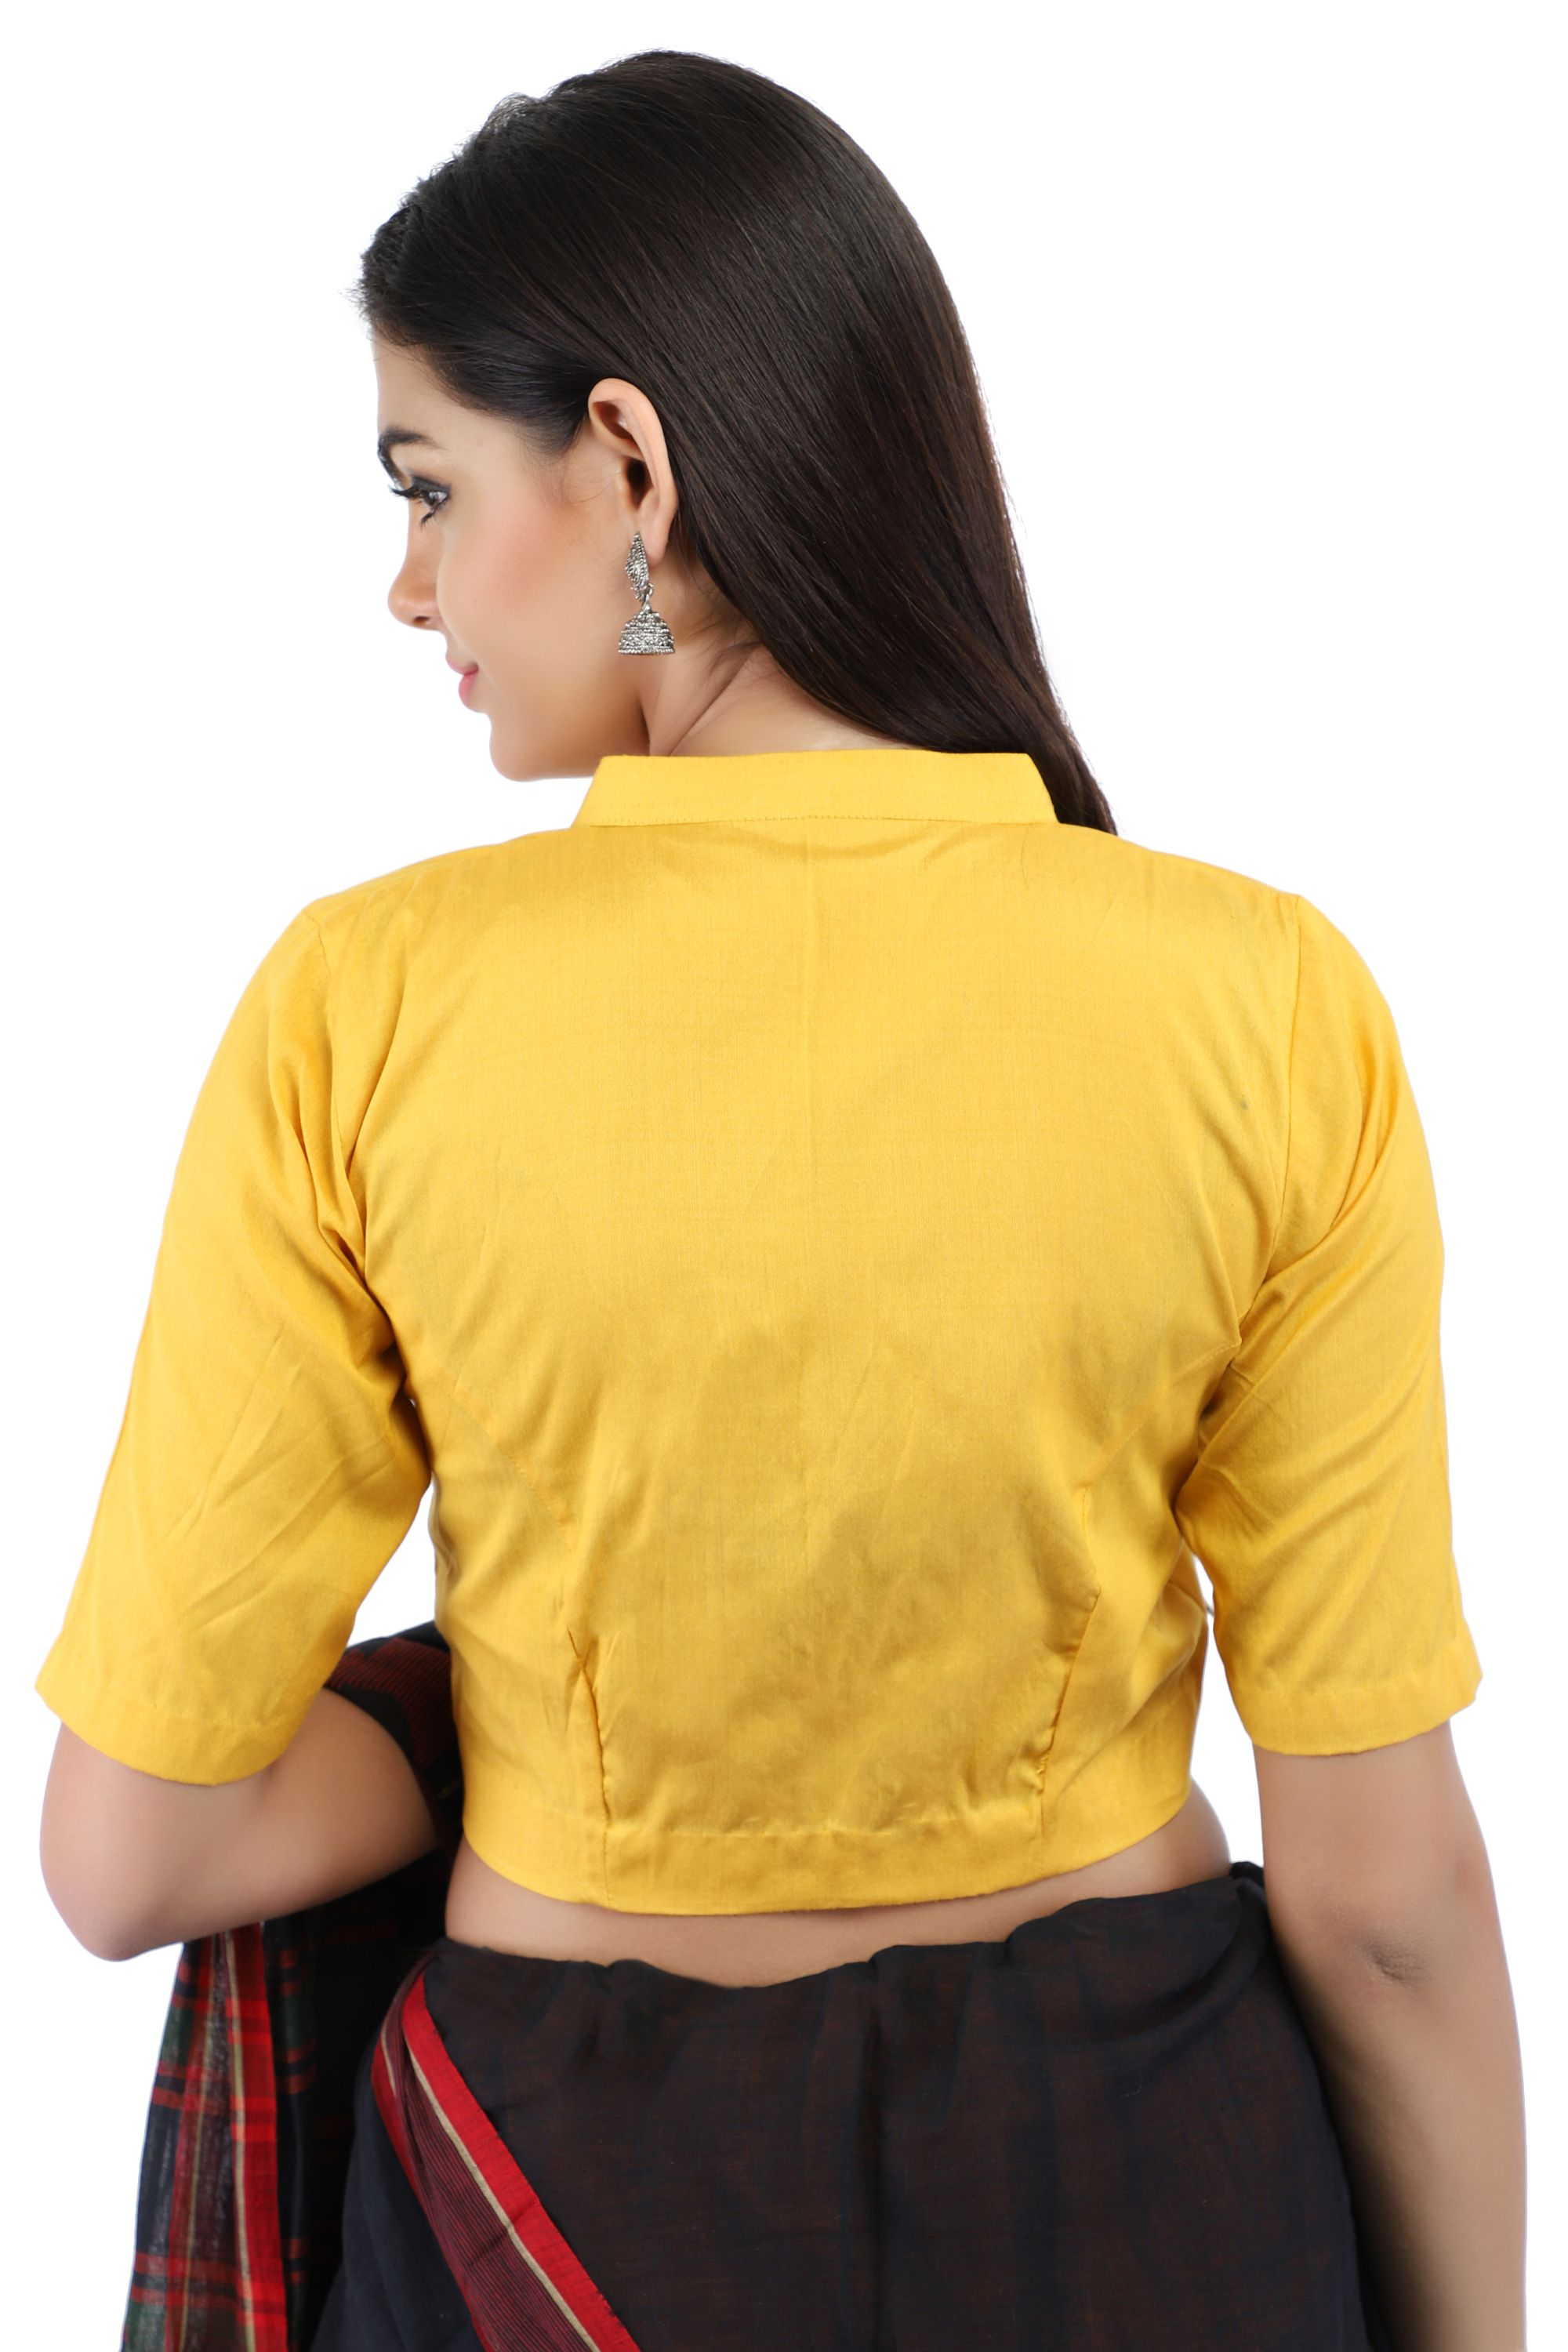 Yellow Cotton Silk Non-Padded Blouse with Hook Closure on Front 2